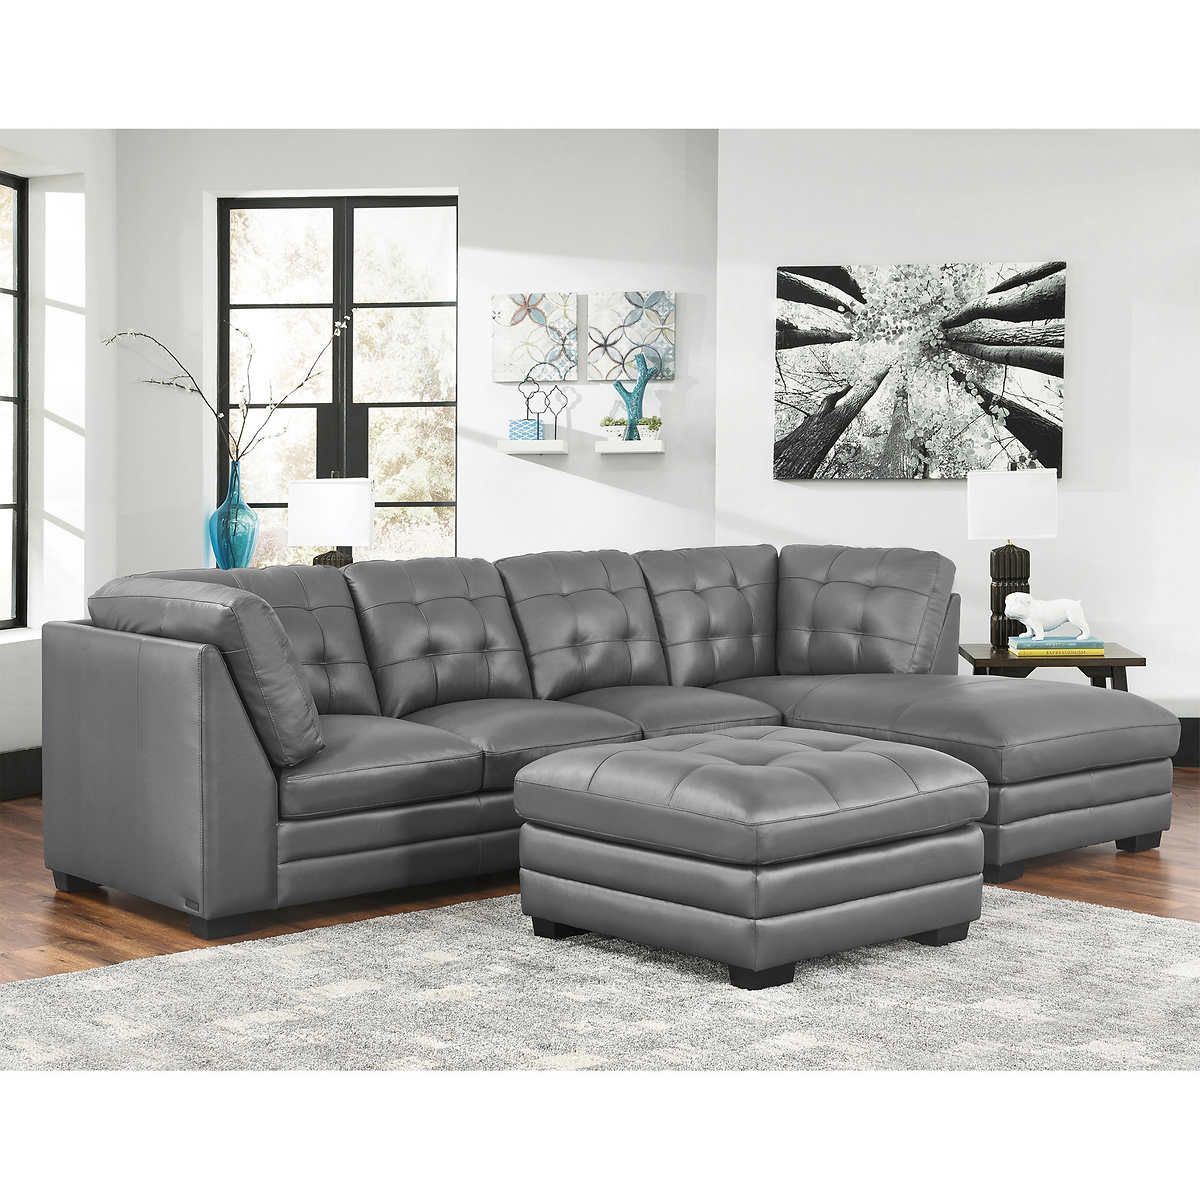 Lawrence Top Grain Leather Sectional with Ottoman Living